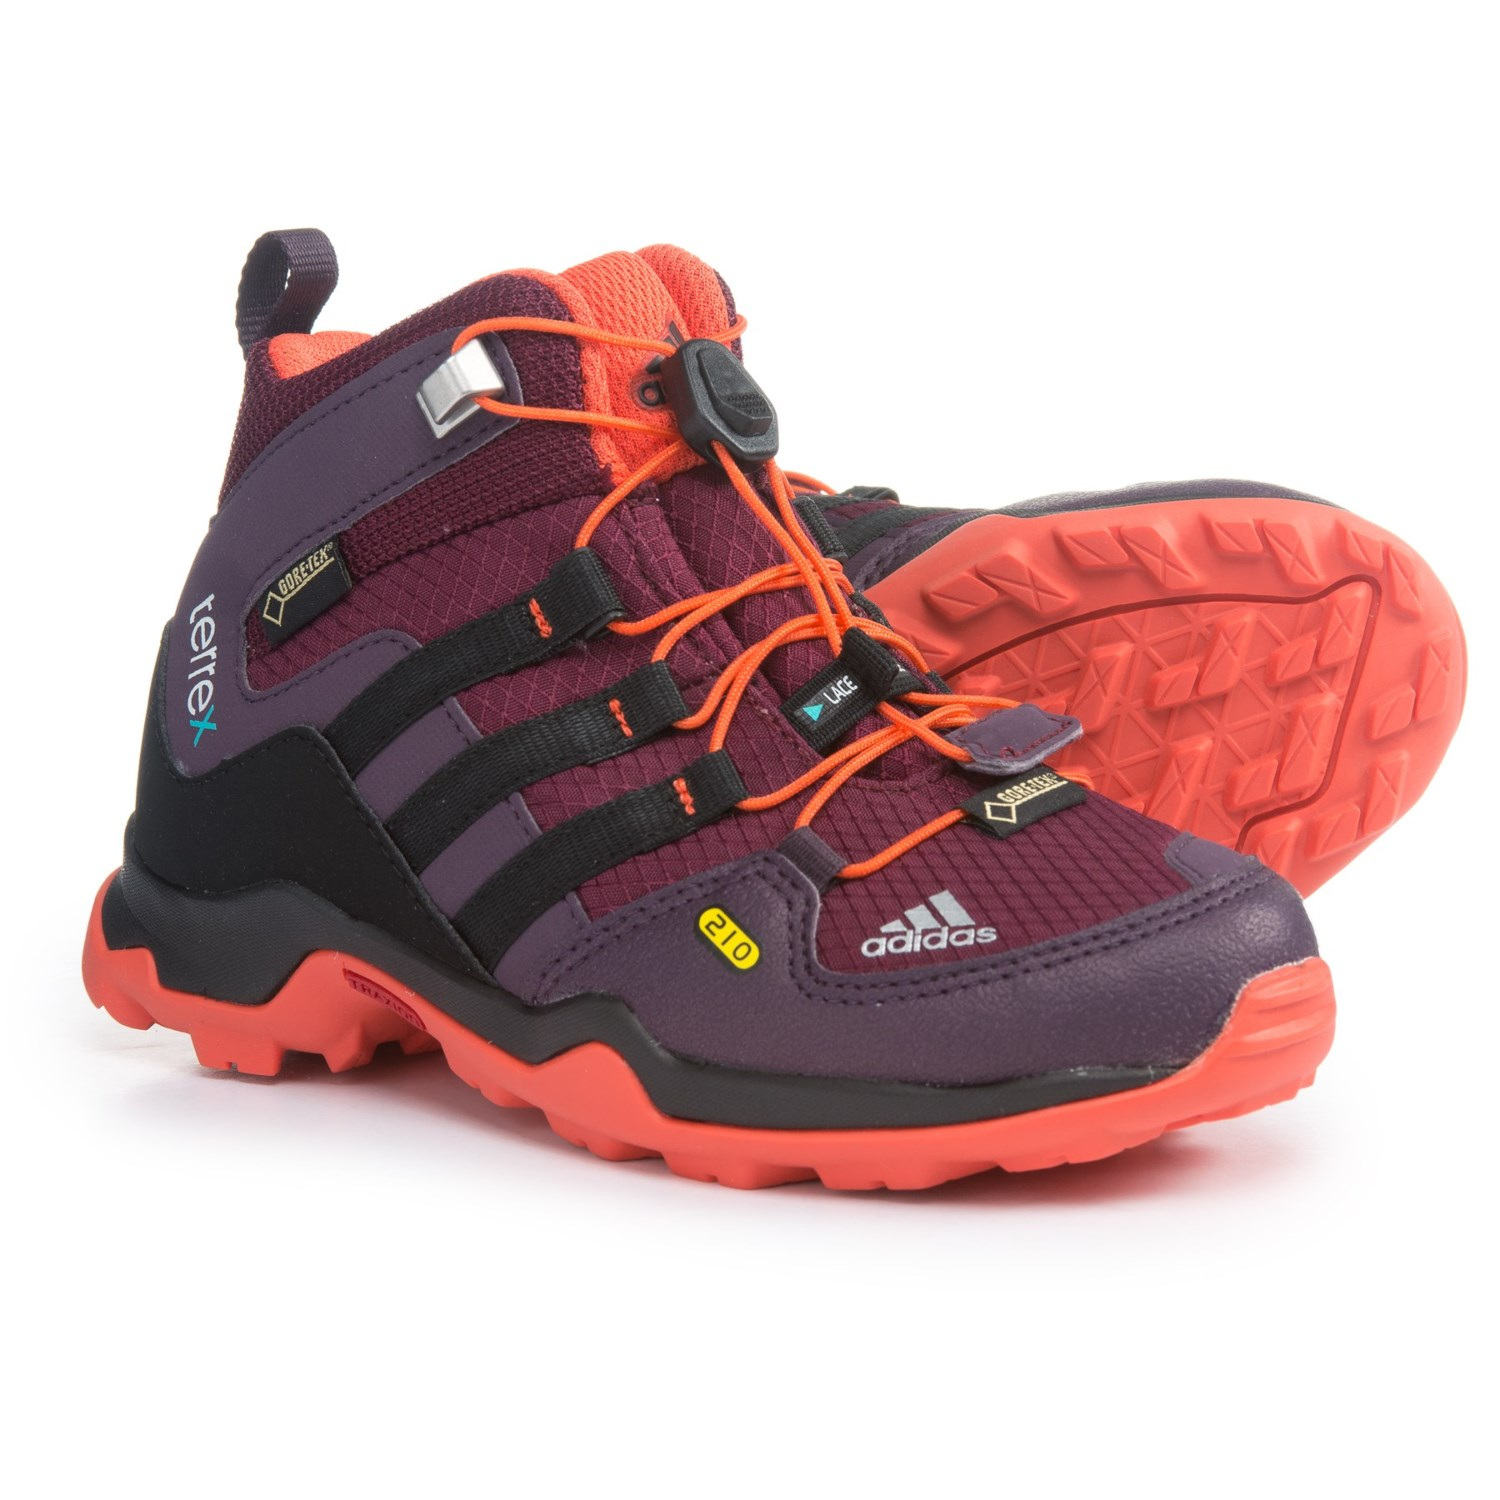 9ae43d09c8bac adidas Terrex Mid Gore-Tex® Hiking Boots - Waterproof (For Little and Big  Kids)